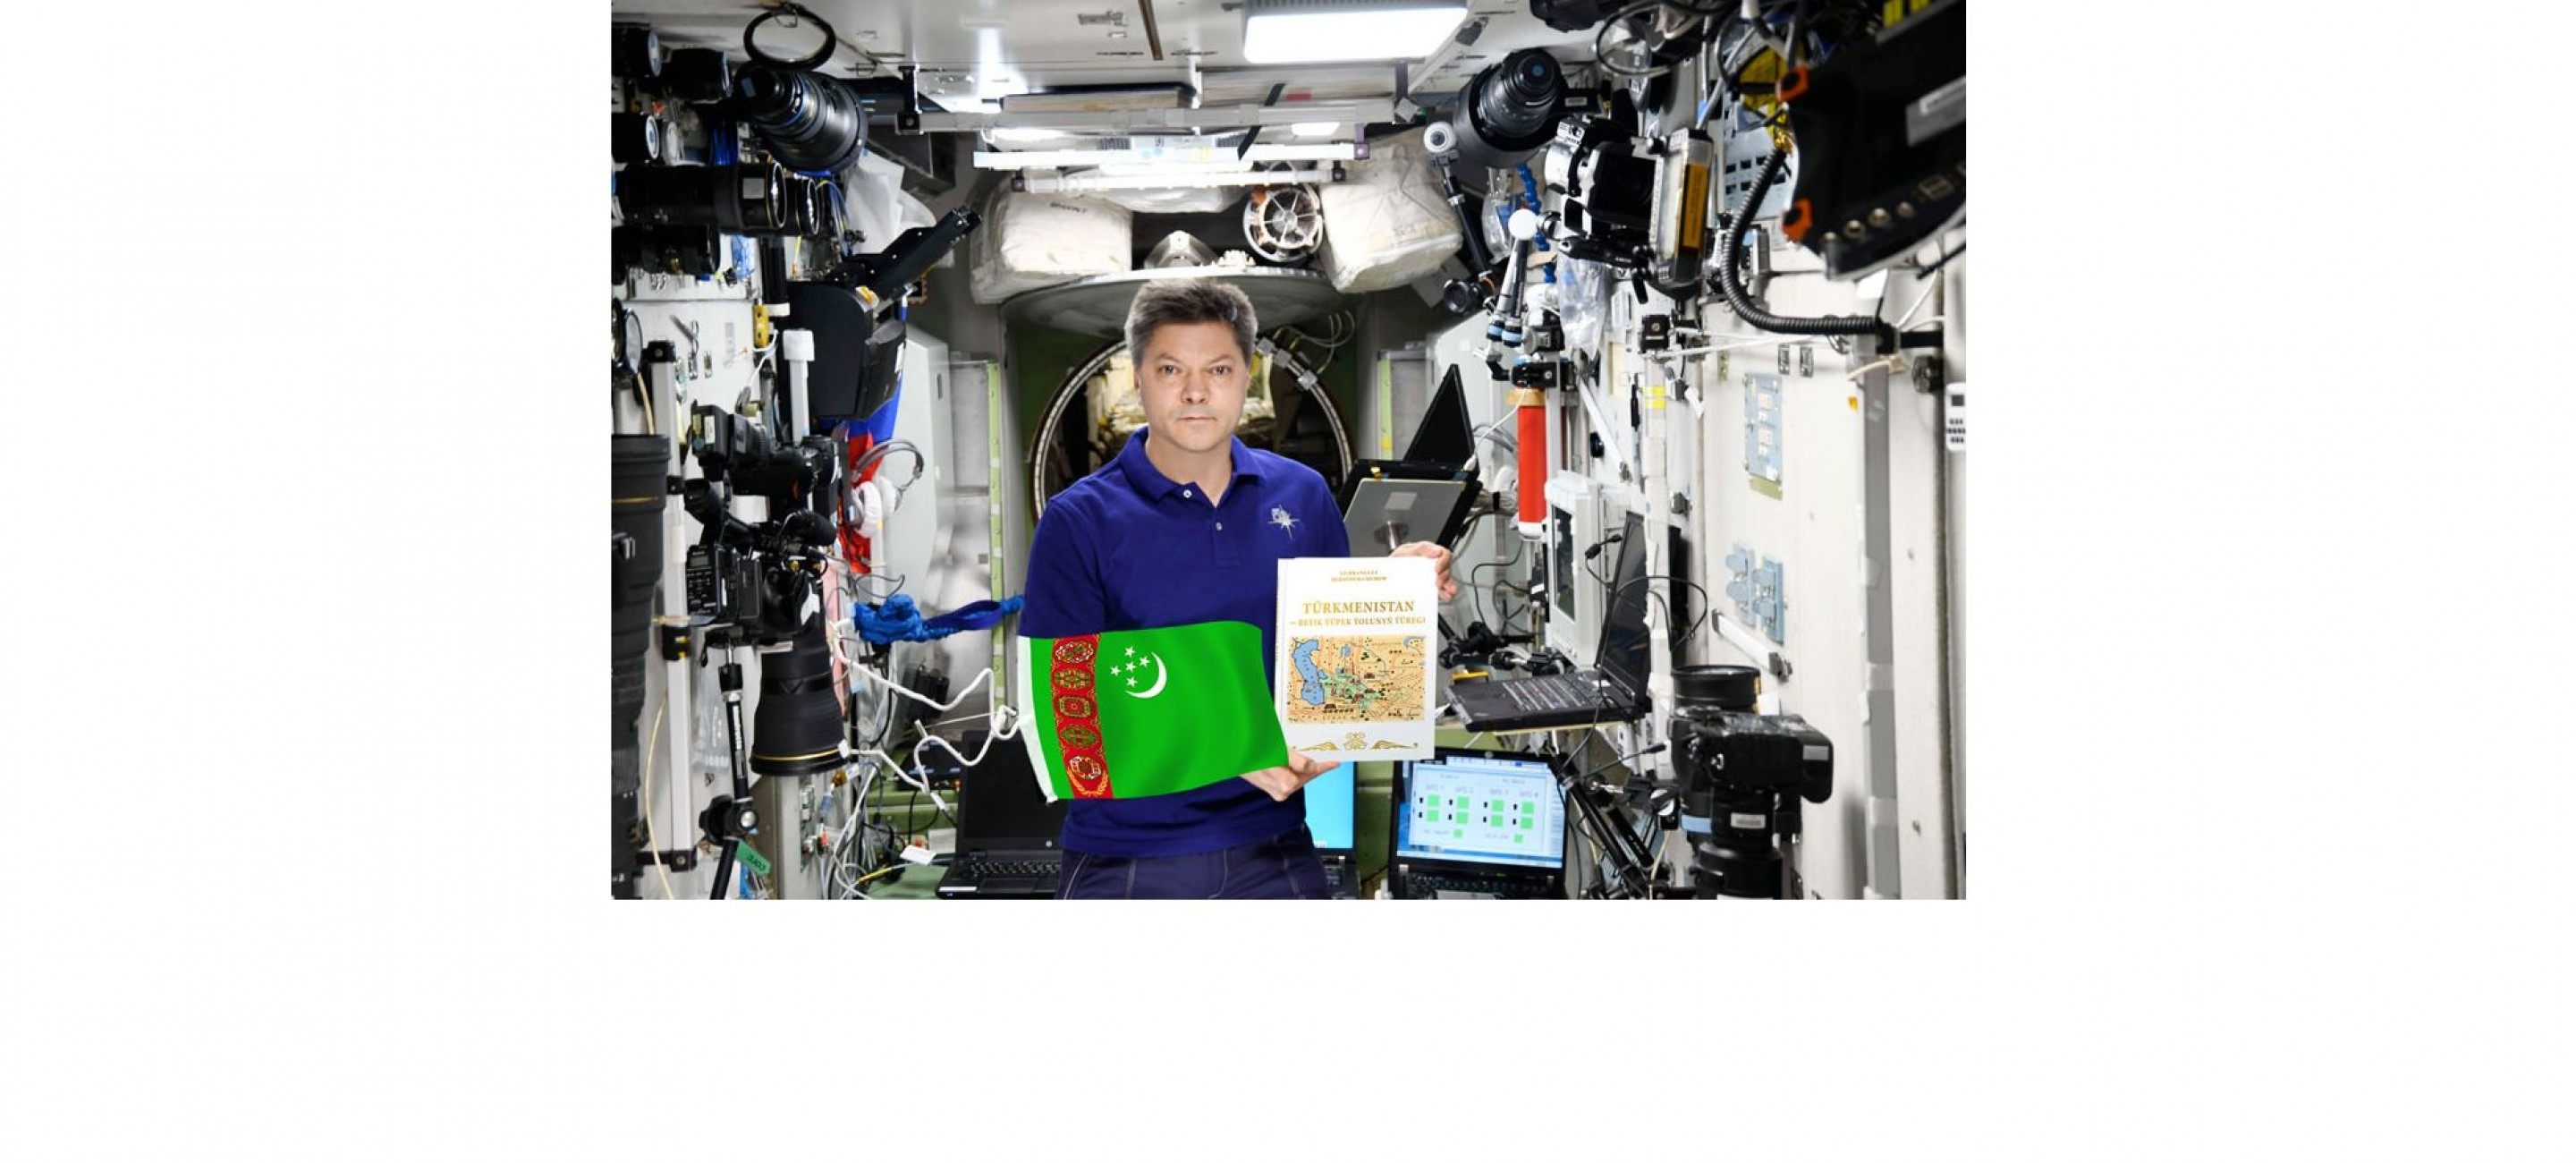 THE BOOK OF THE PRESIDENT OF TURKMENISTAN IS ON THE INTERNATIONAL SPACE STATION